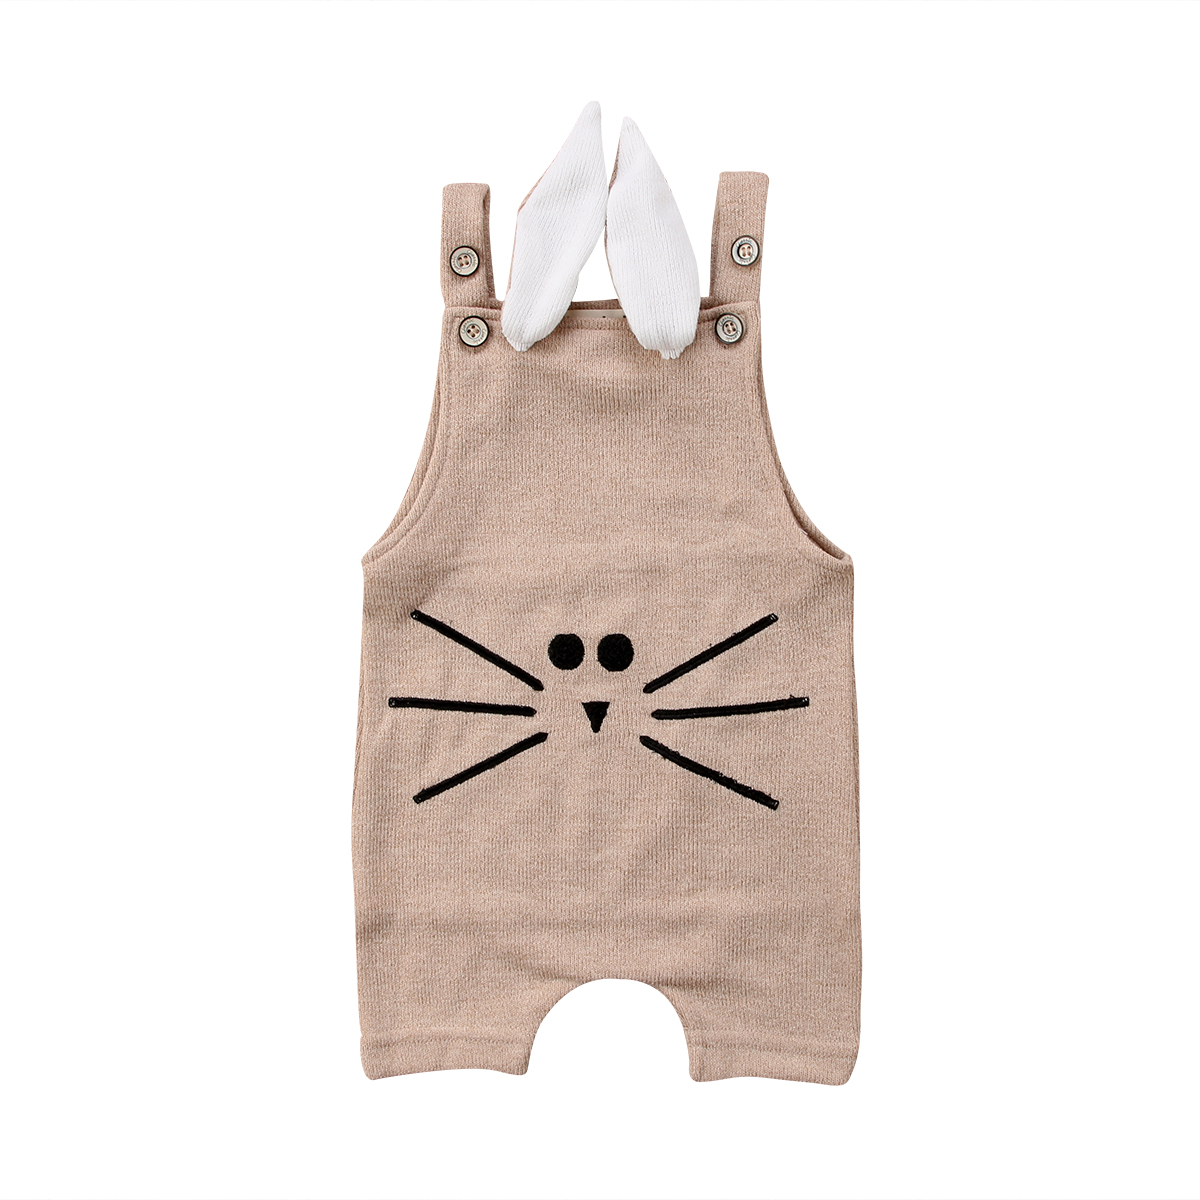 2018 New UK Newborn Infant Baby Boys Girls Romper Hooded Jumpsuit Clothes Outfit